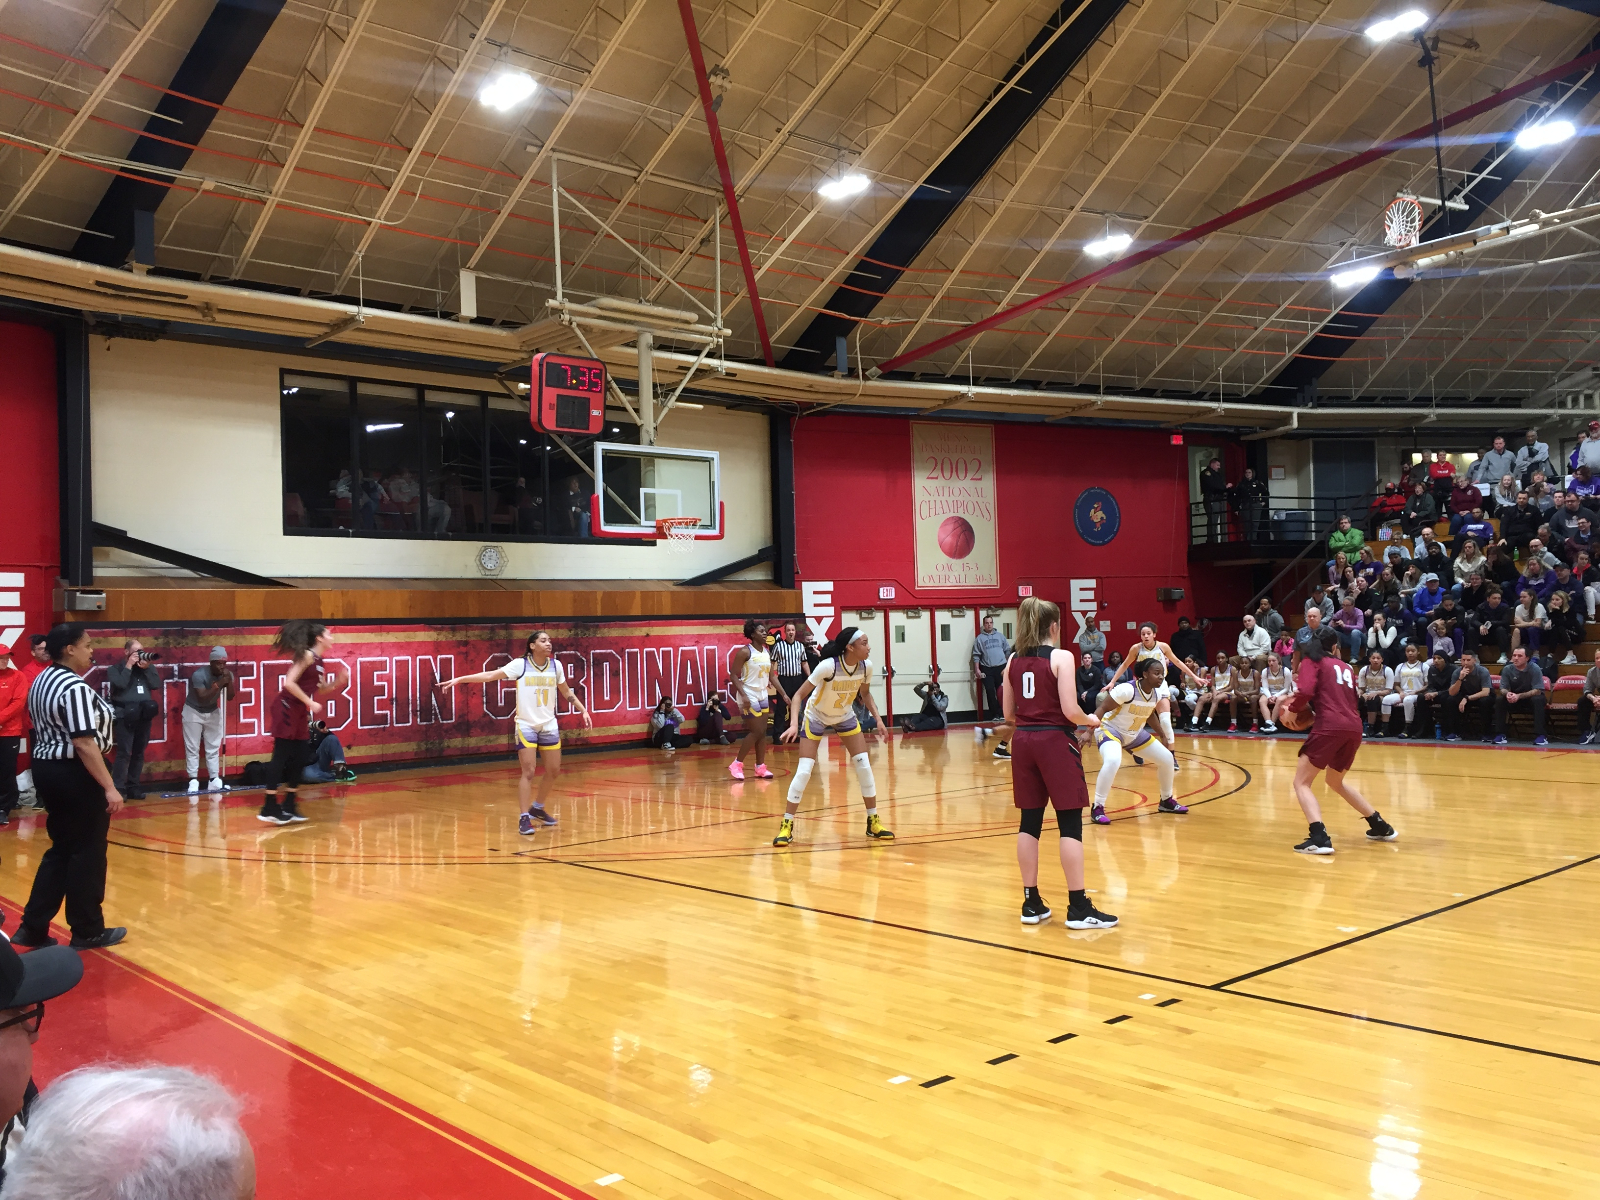 Regional title on the line for Lady Raiders in enormous Battle of 256